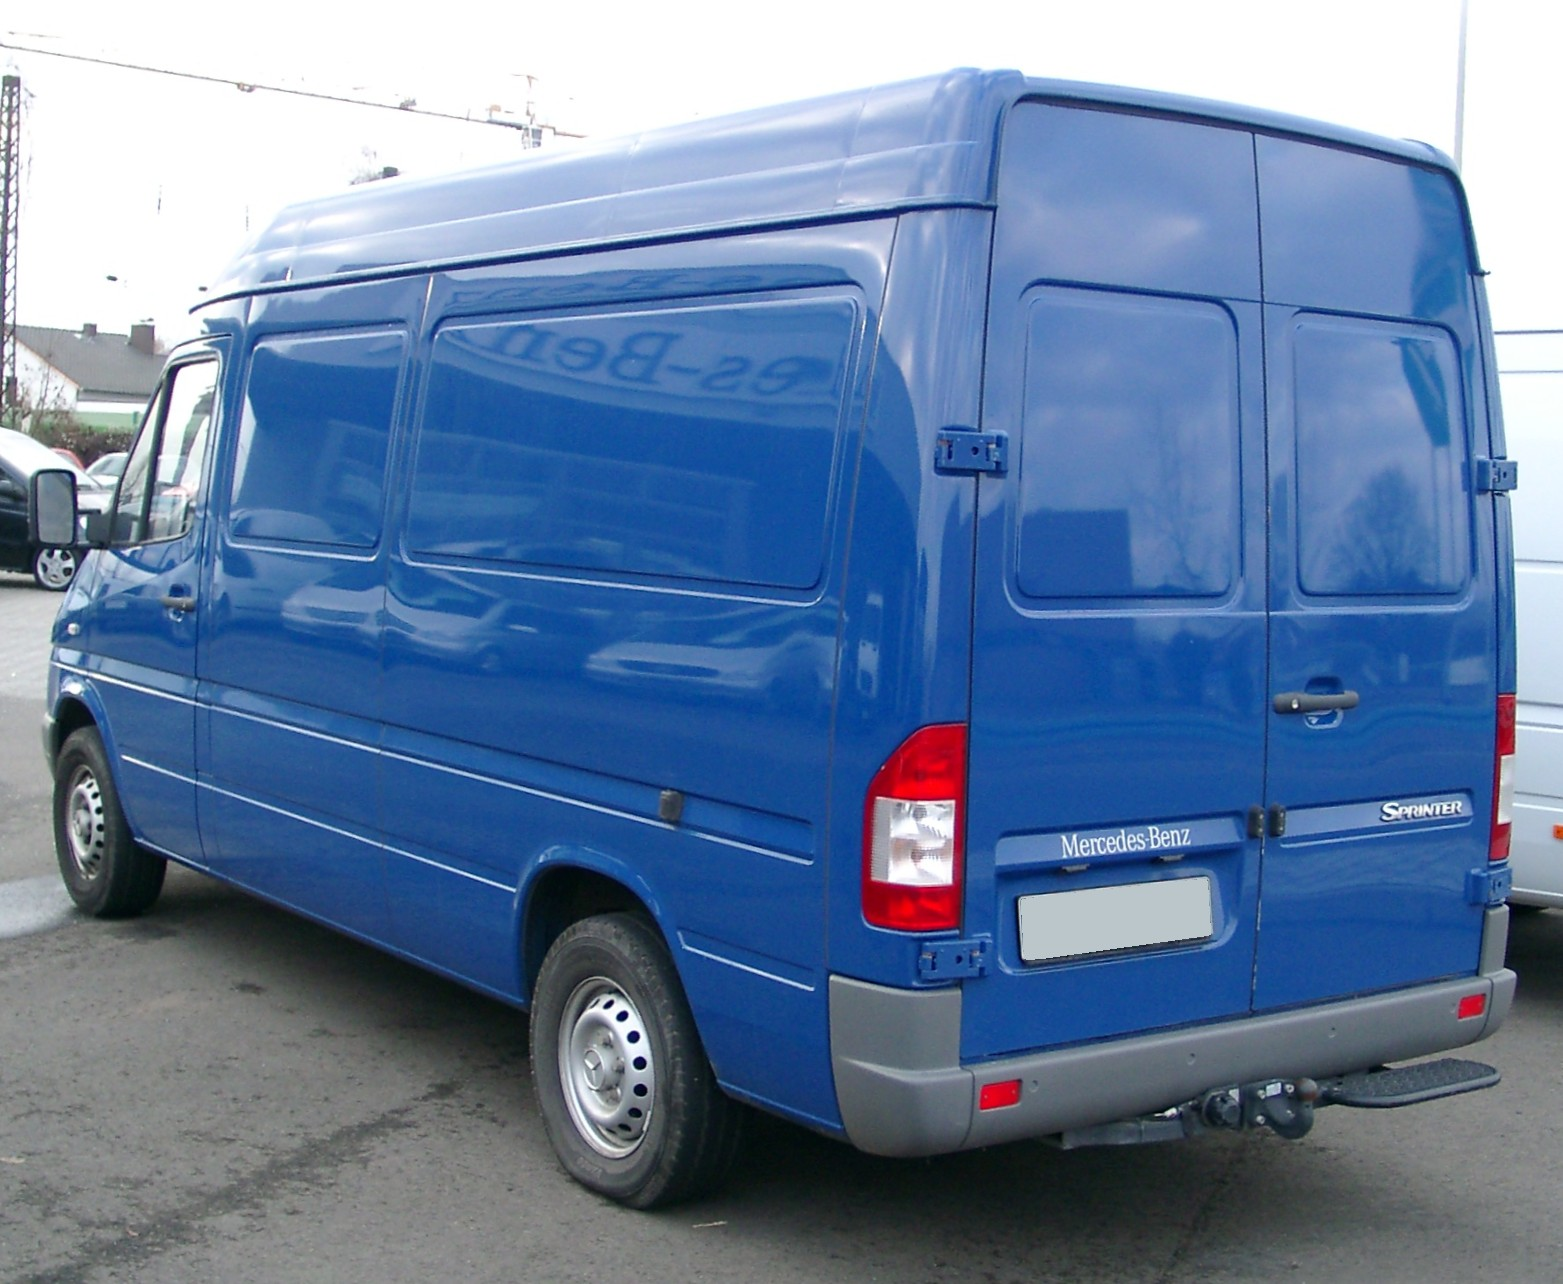 Mercedes Sprinter Wiki >> File Mercedes Sprinter Rear 20080102 Jpg Wikimedia Commons